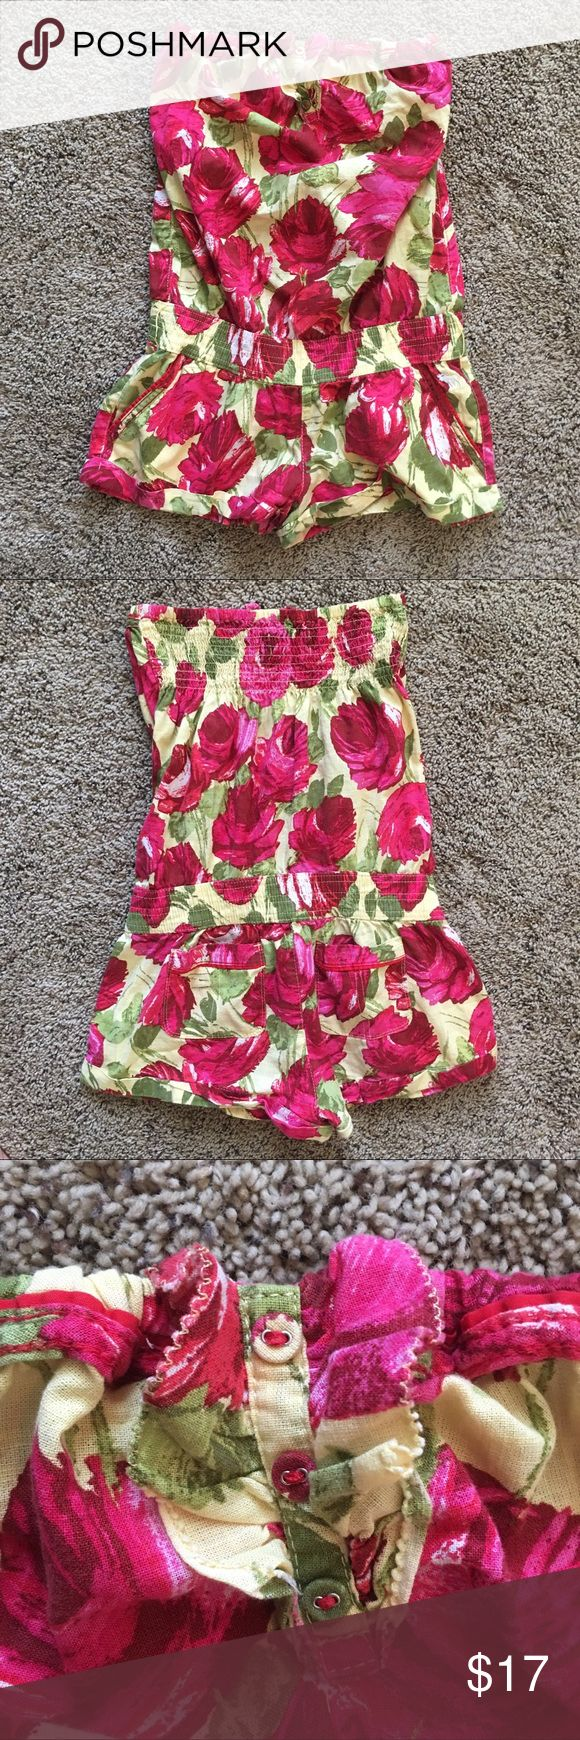 Abercrombie and Fitch Strapless Rose Romper Cute strapless romper made of 100% Cotton. The elastic is still in EUC. Make an offer if interested and I'm happy to answer any questions! All my clothing comes from a pet free and smoke free home Abercrombie & Fitch Pants Jumpsuits & Rompers